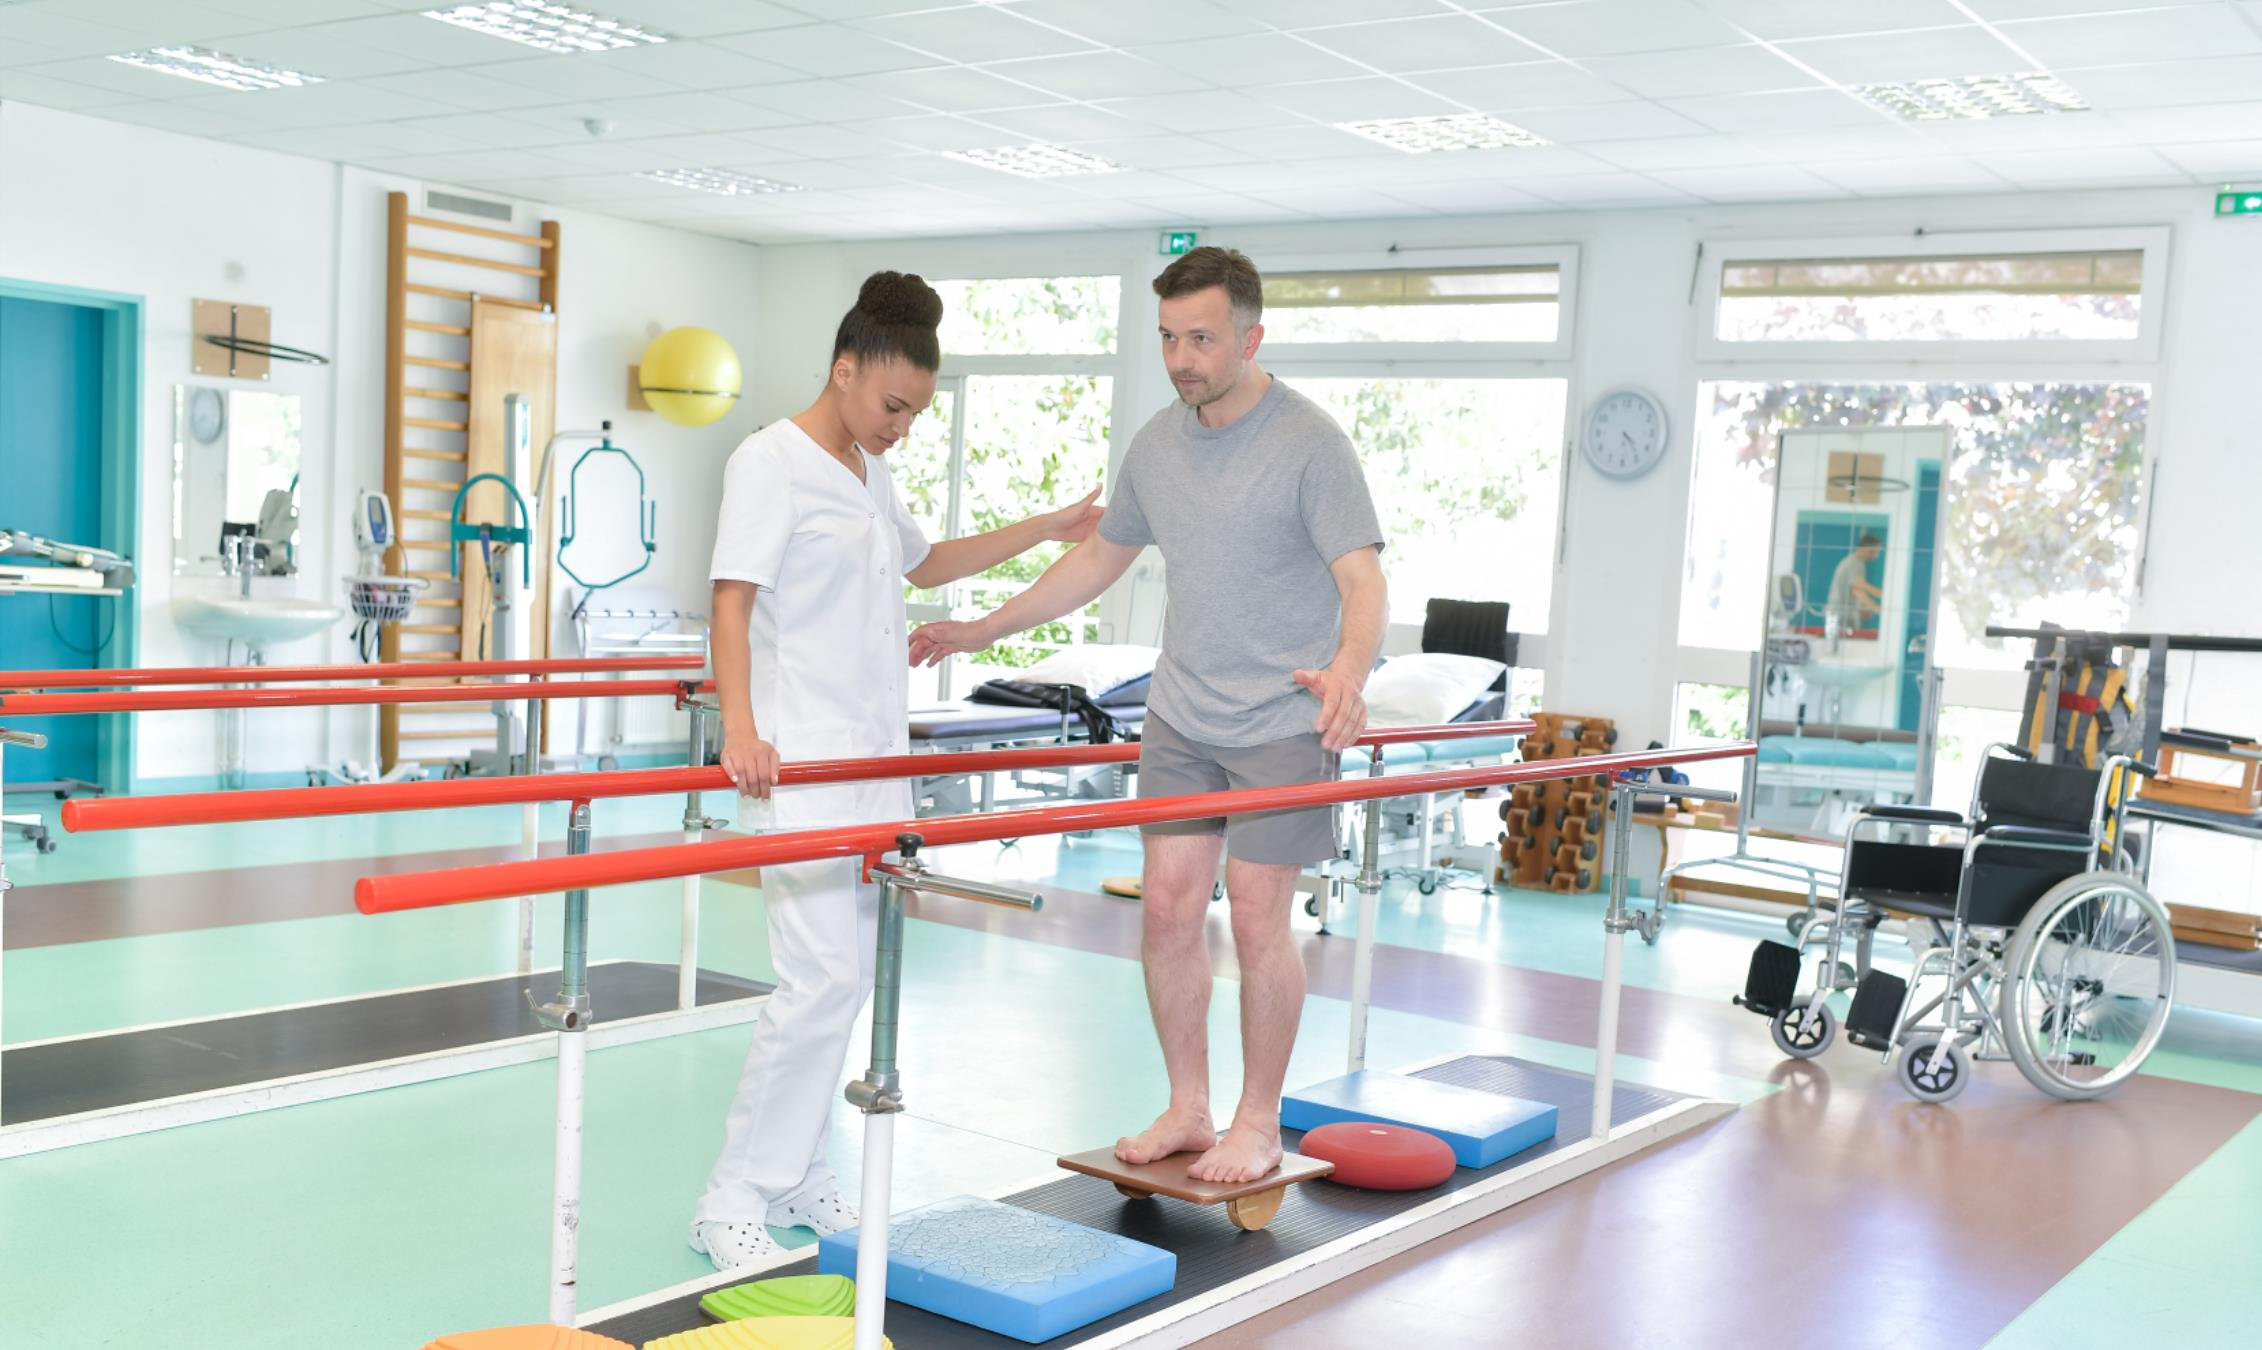 female physiotherapist assists male patient with balancing exercise